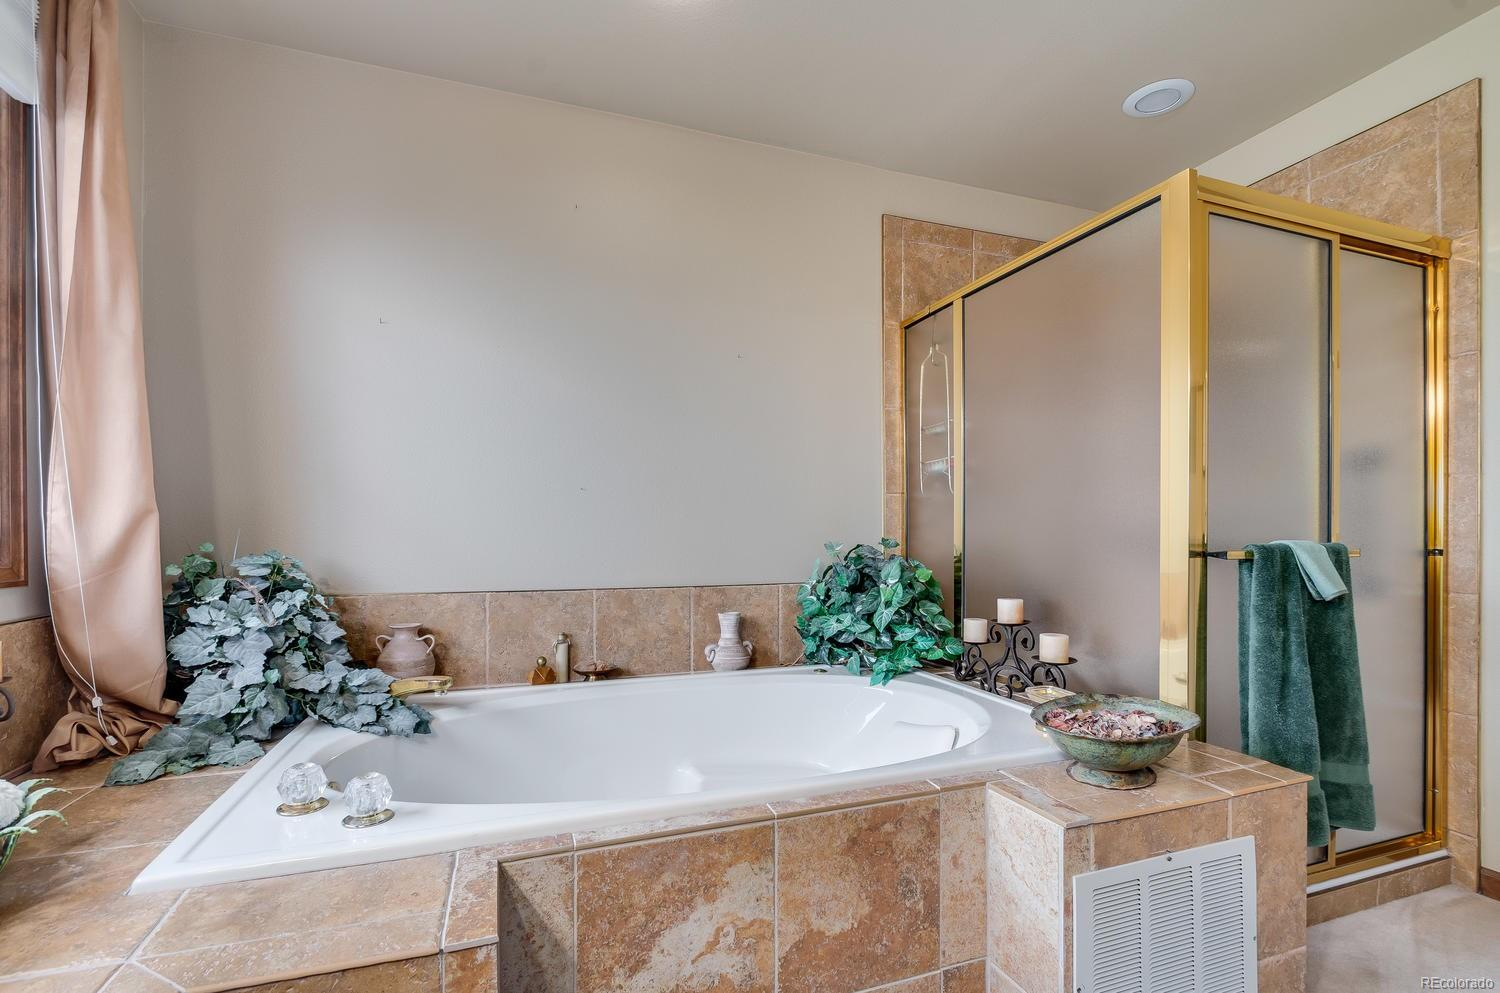 Jet action tub and walk-in shower make this the perfect place to relax!